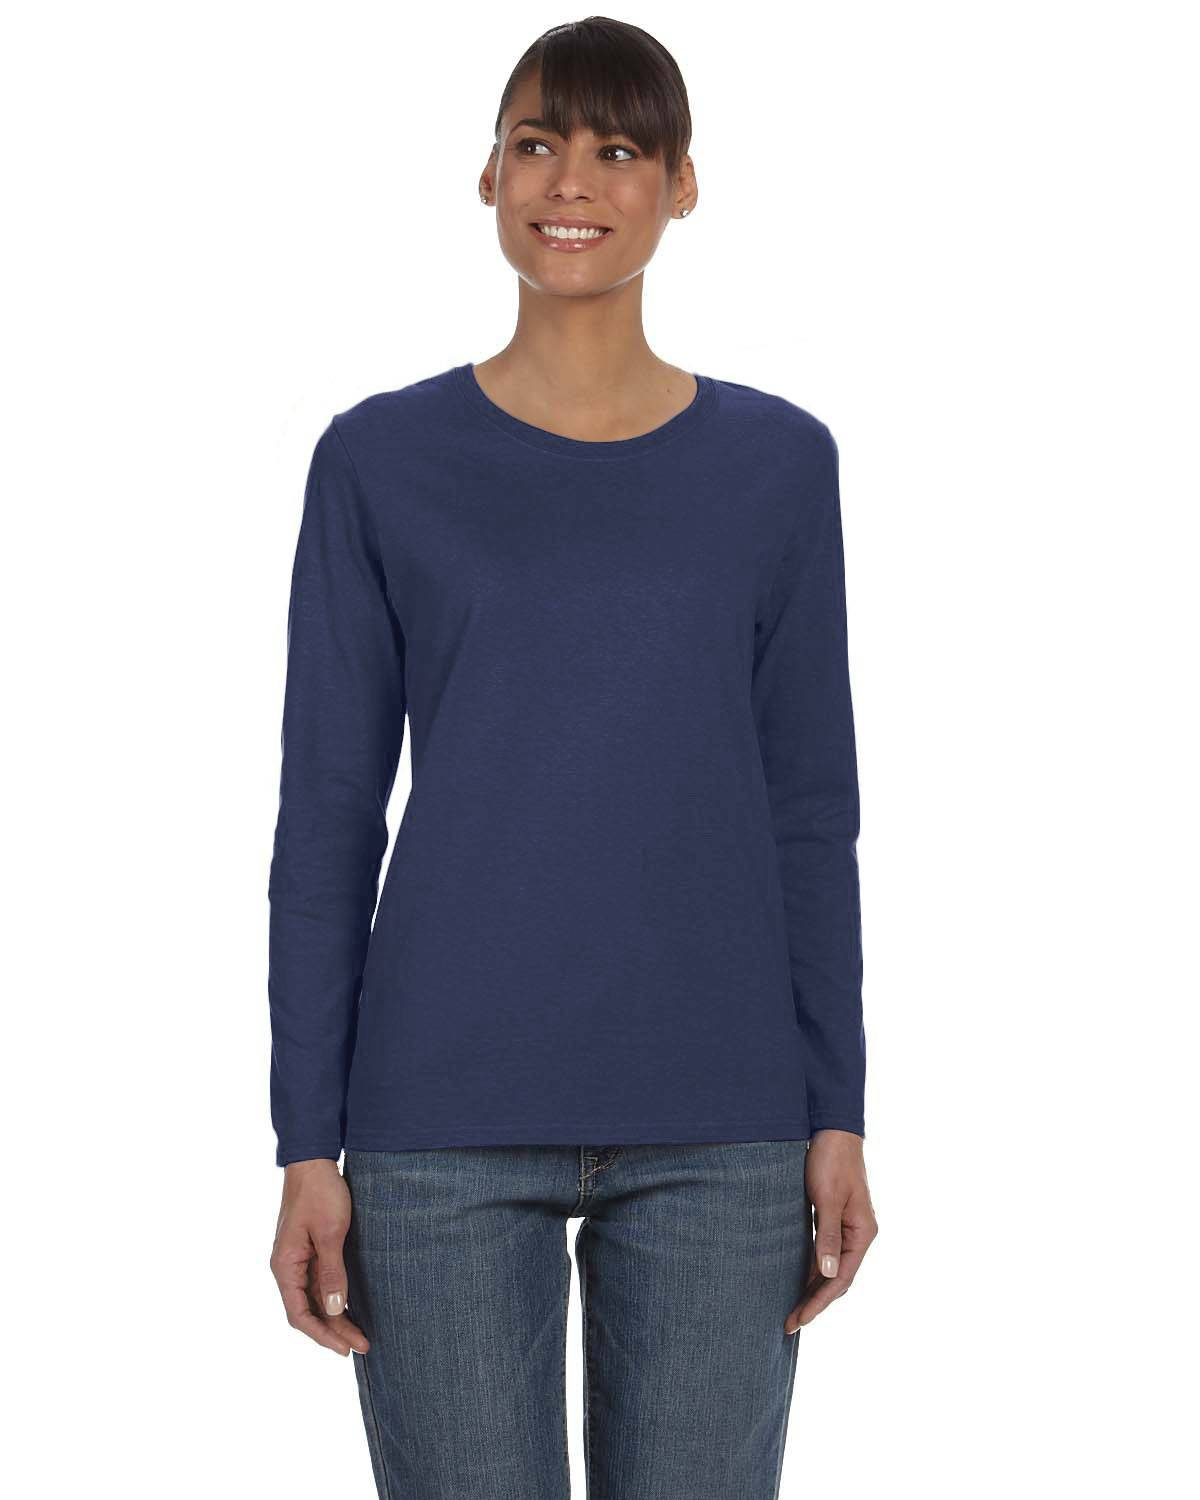 Gildan Ladies' Heavy Cotton 8.8 oz./lin. yd. Long-Sleeve T-Shirt | G540L